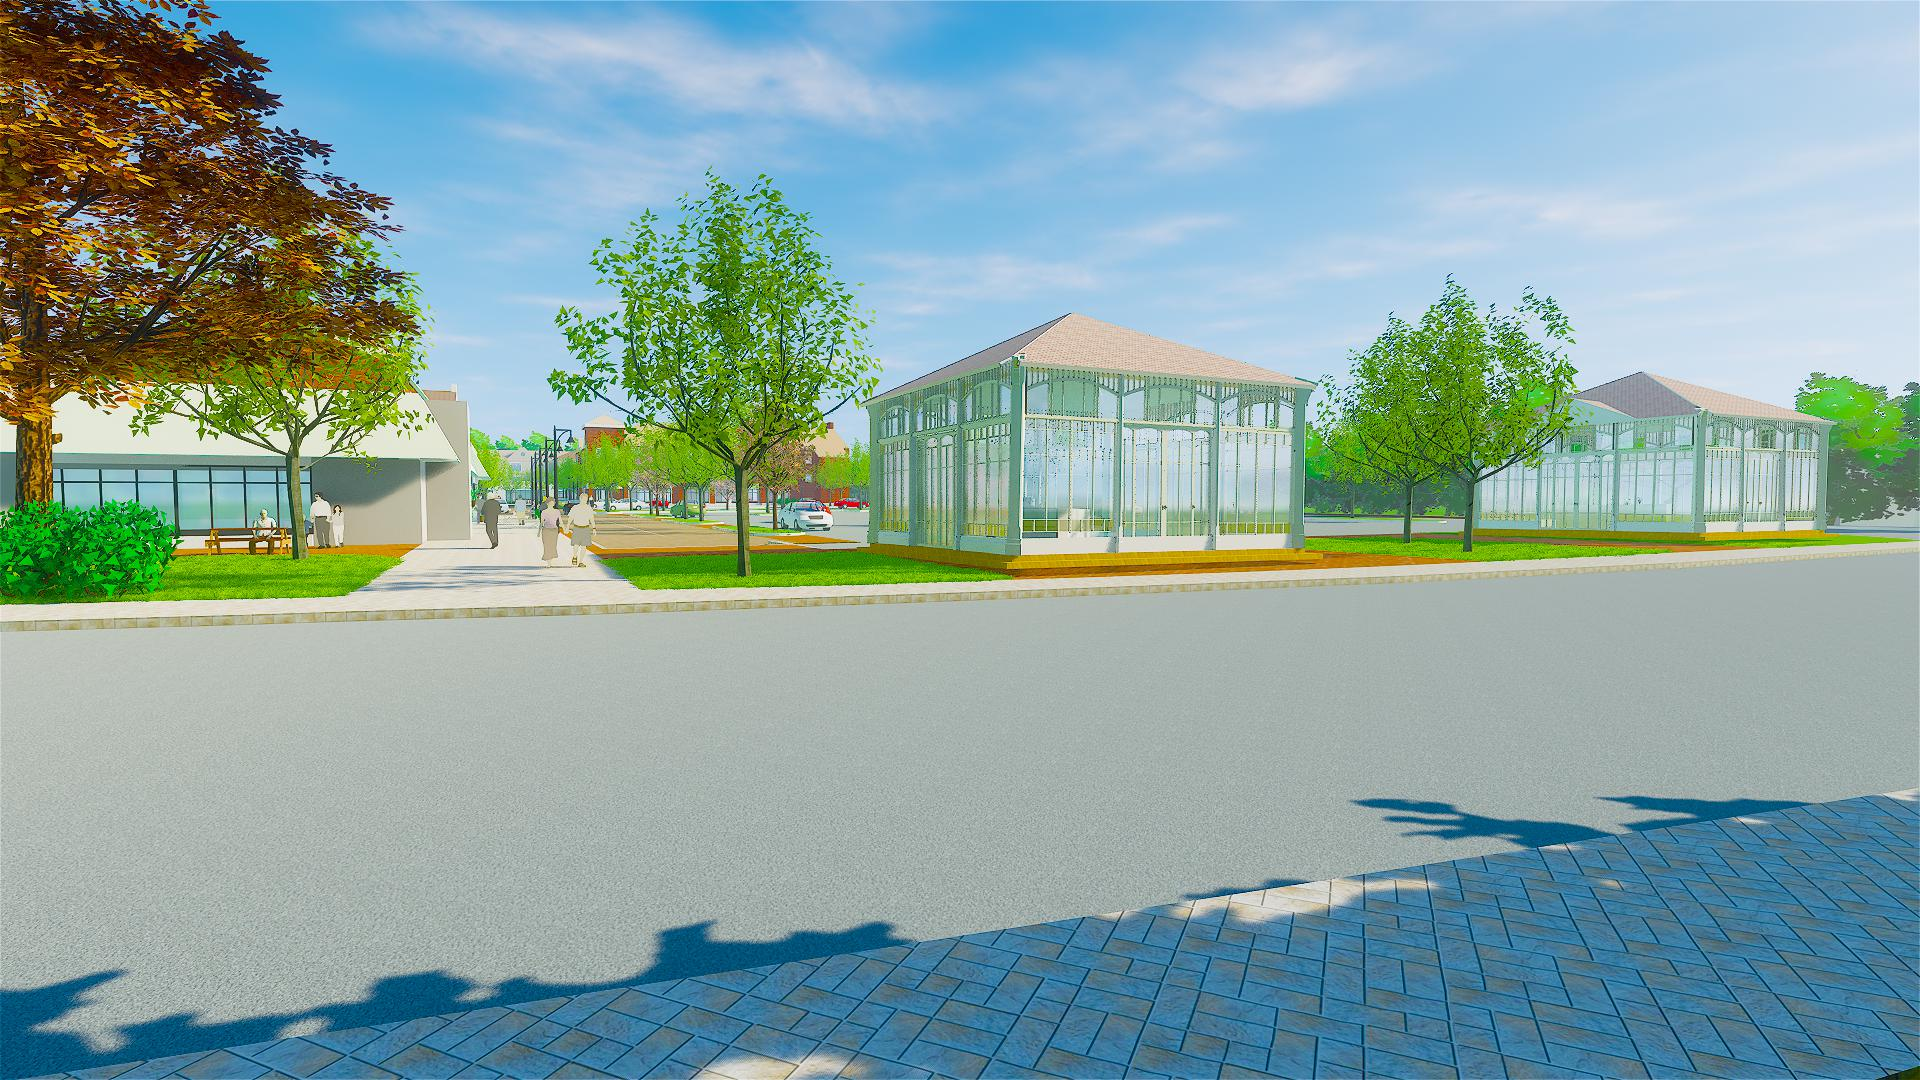 Durham Mill Plaza architectural rendering - street pads